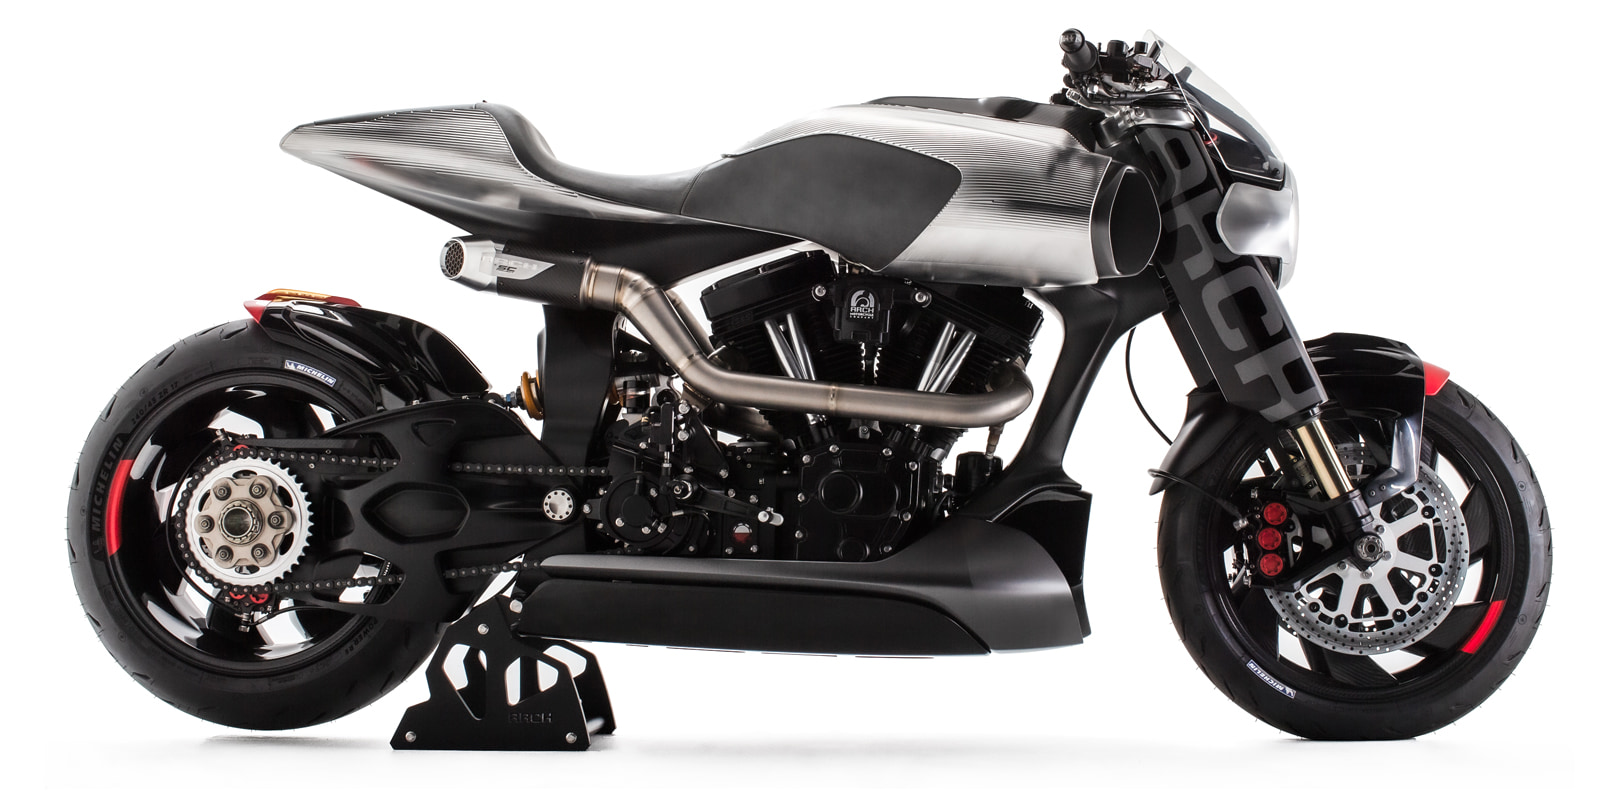 ARCH Method 143 — ARCH Motorcycle